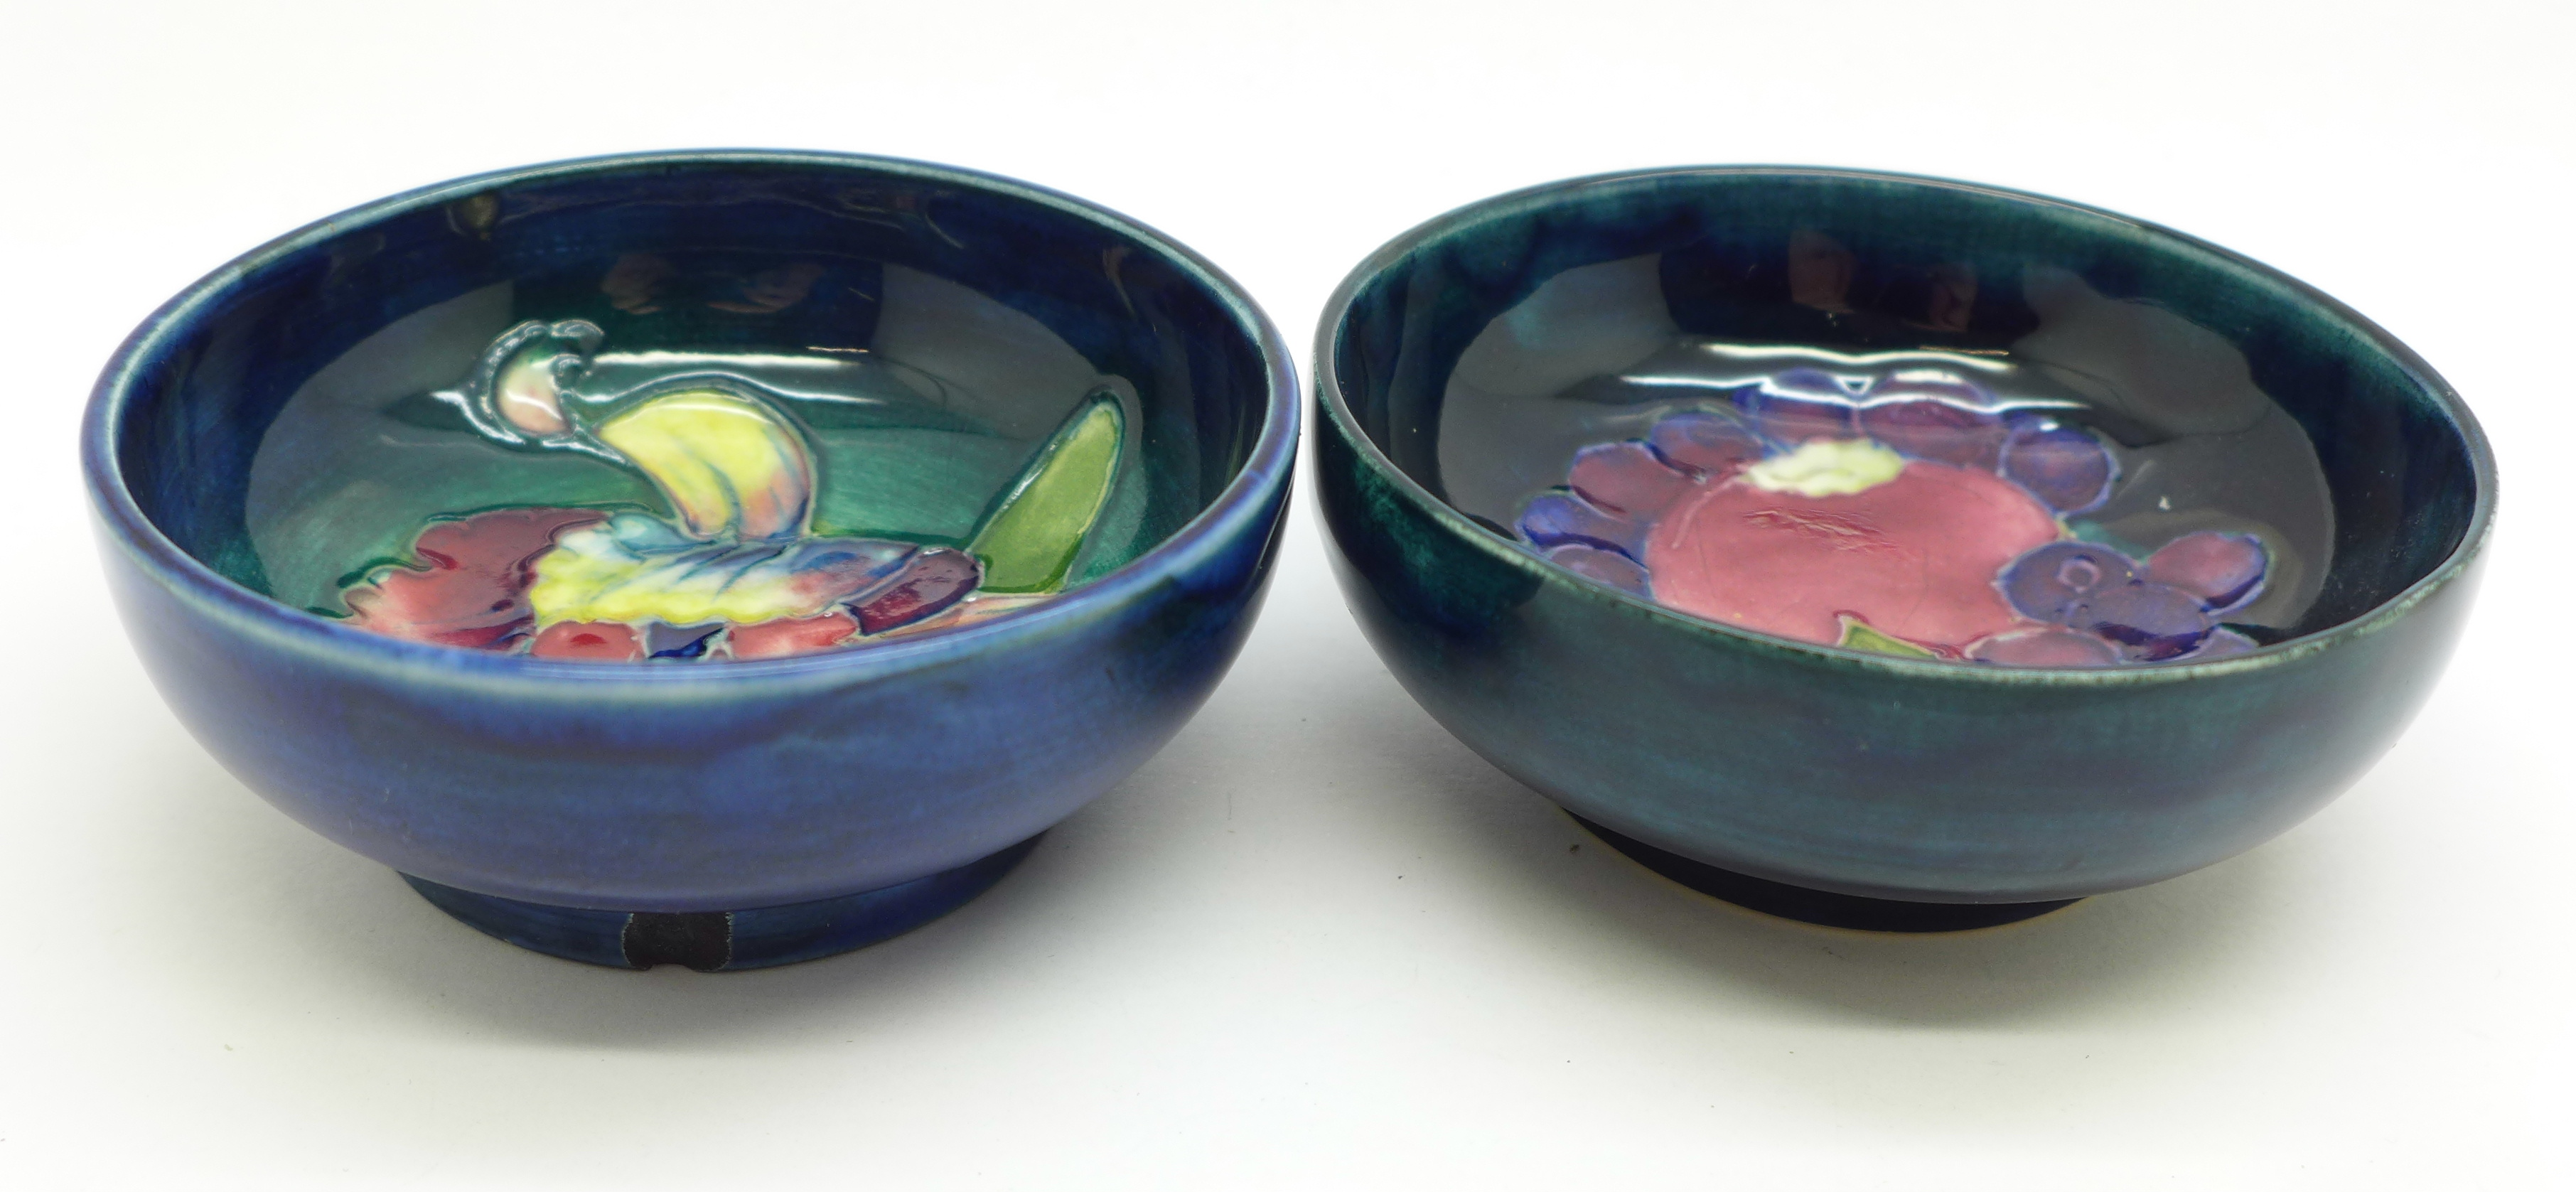 Two Moorcroft dishes, orchid pattern a/f, chip on the side of the base, 72mm, (156,160)